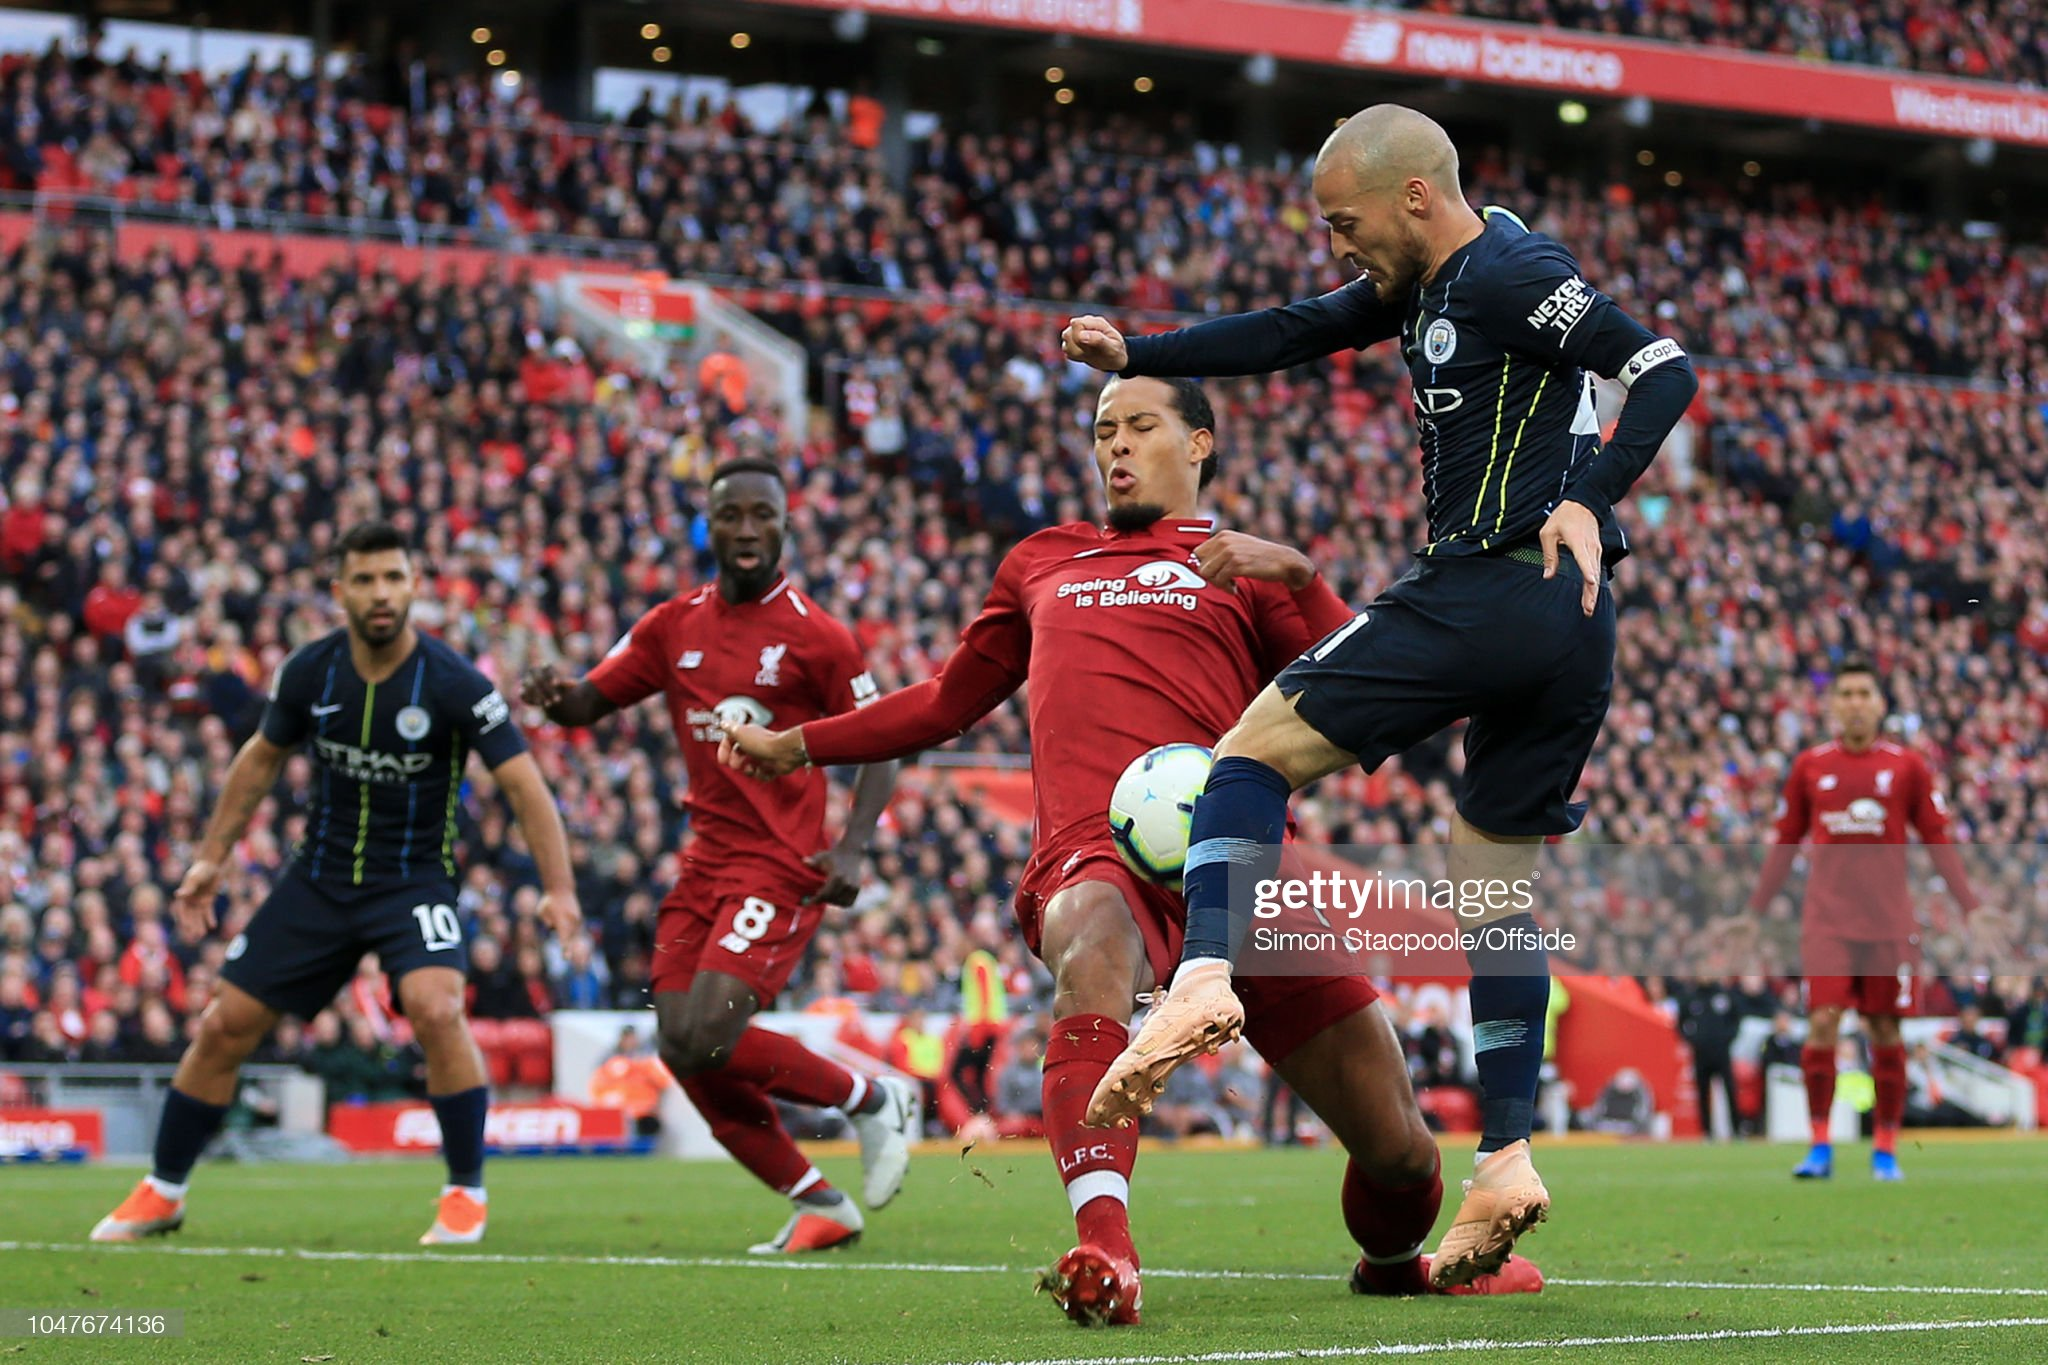 Liverpool v Manchester City preview, prediction and odds